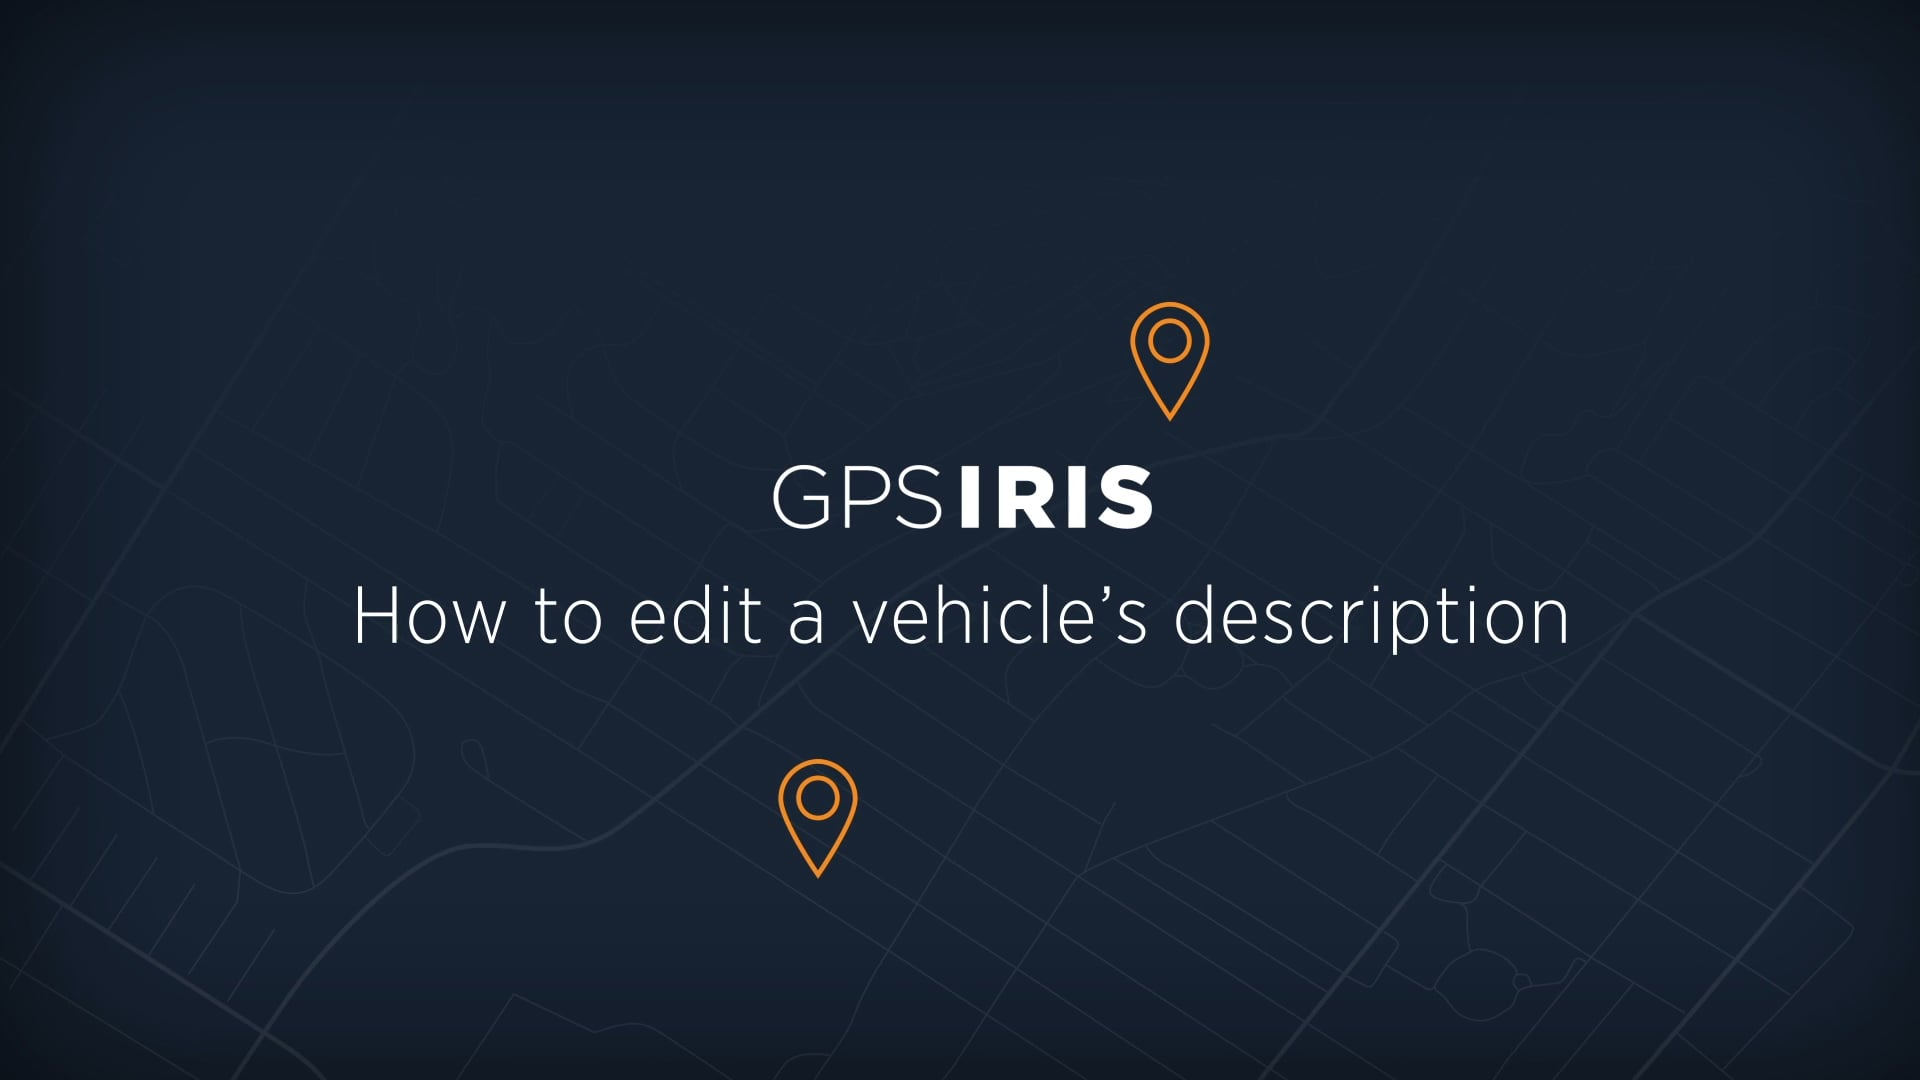 How to edit vehicle information